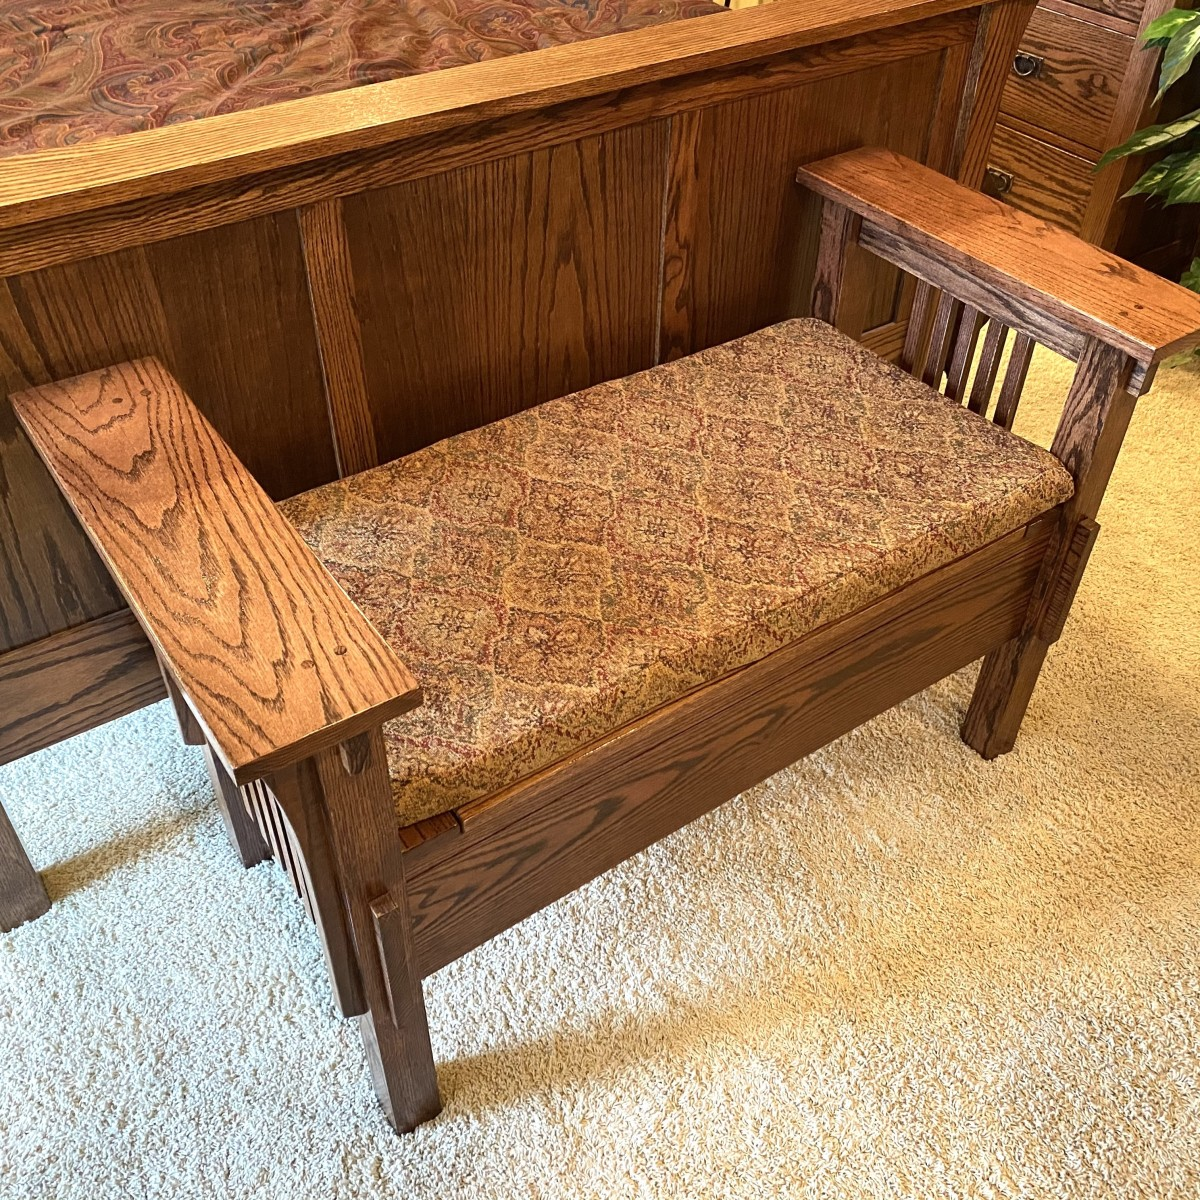 Wood bench with new cushion